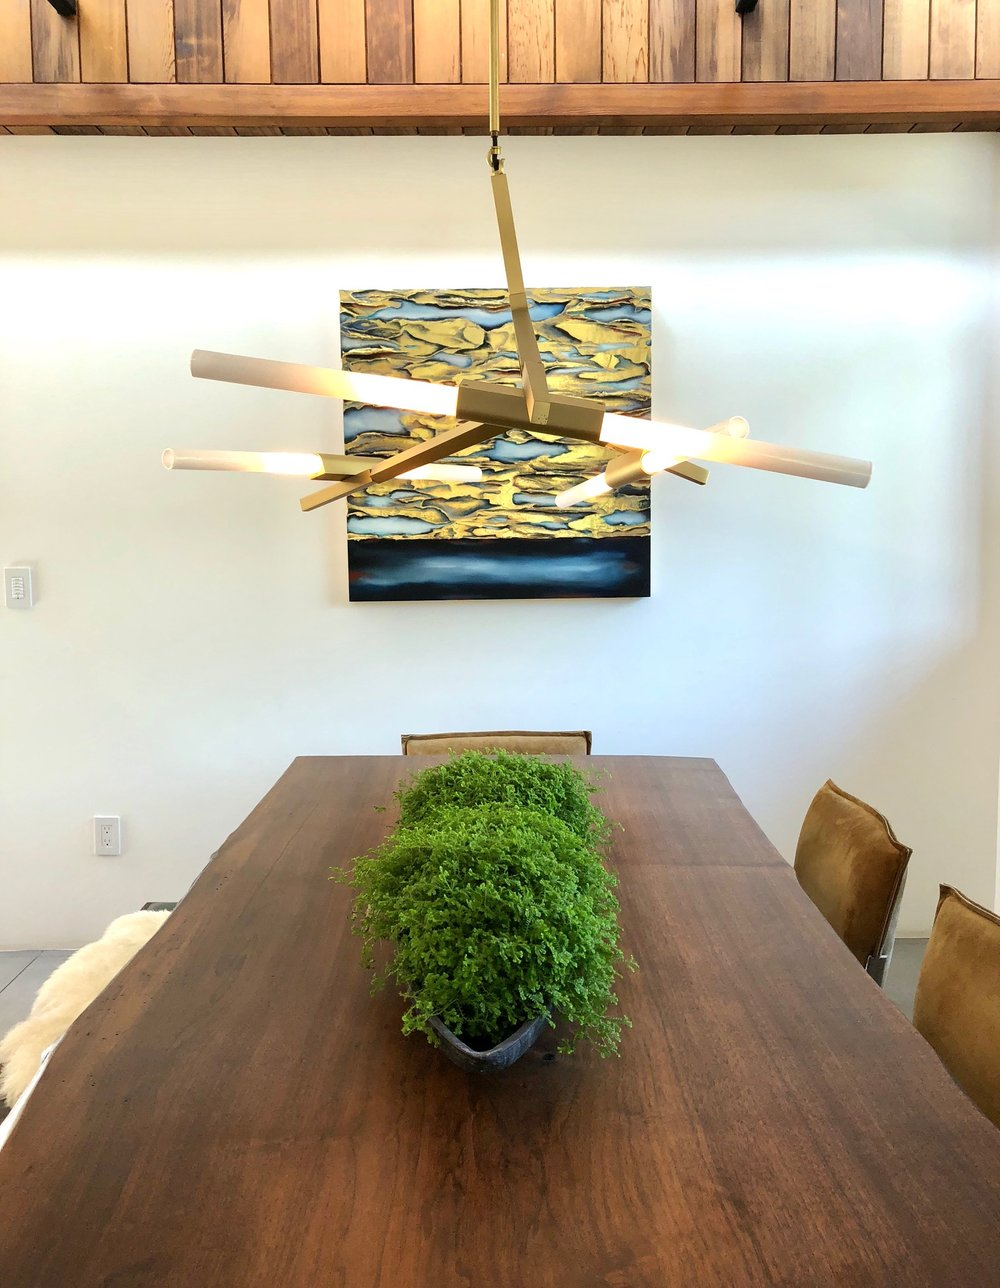 Loving a Live Edge |live edge dining table seen at  Dwell on Design home tour  #liveedge